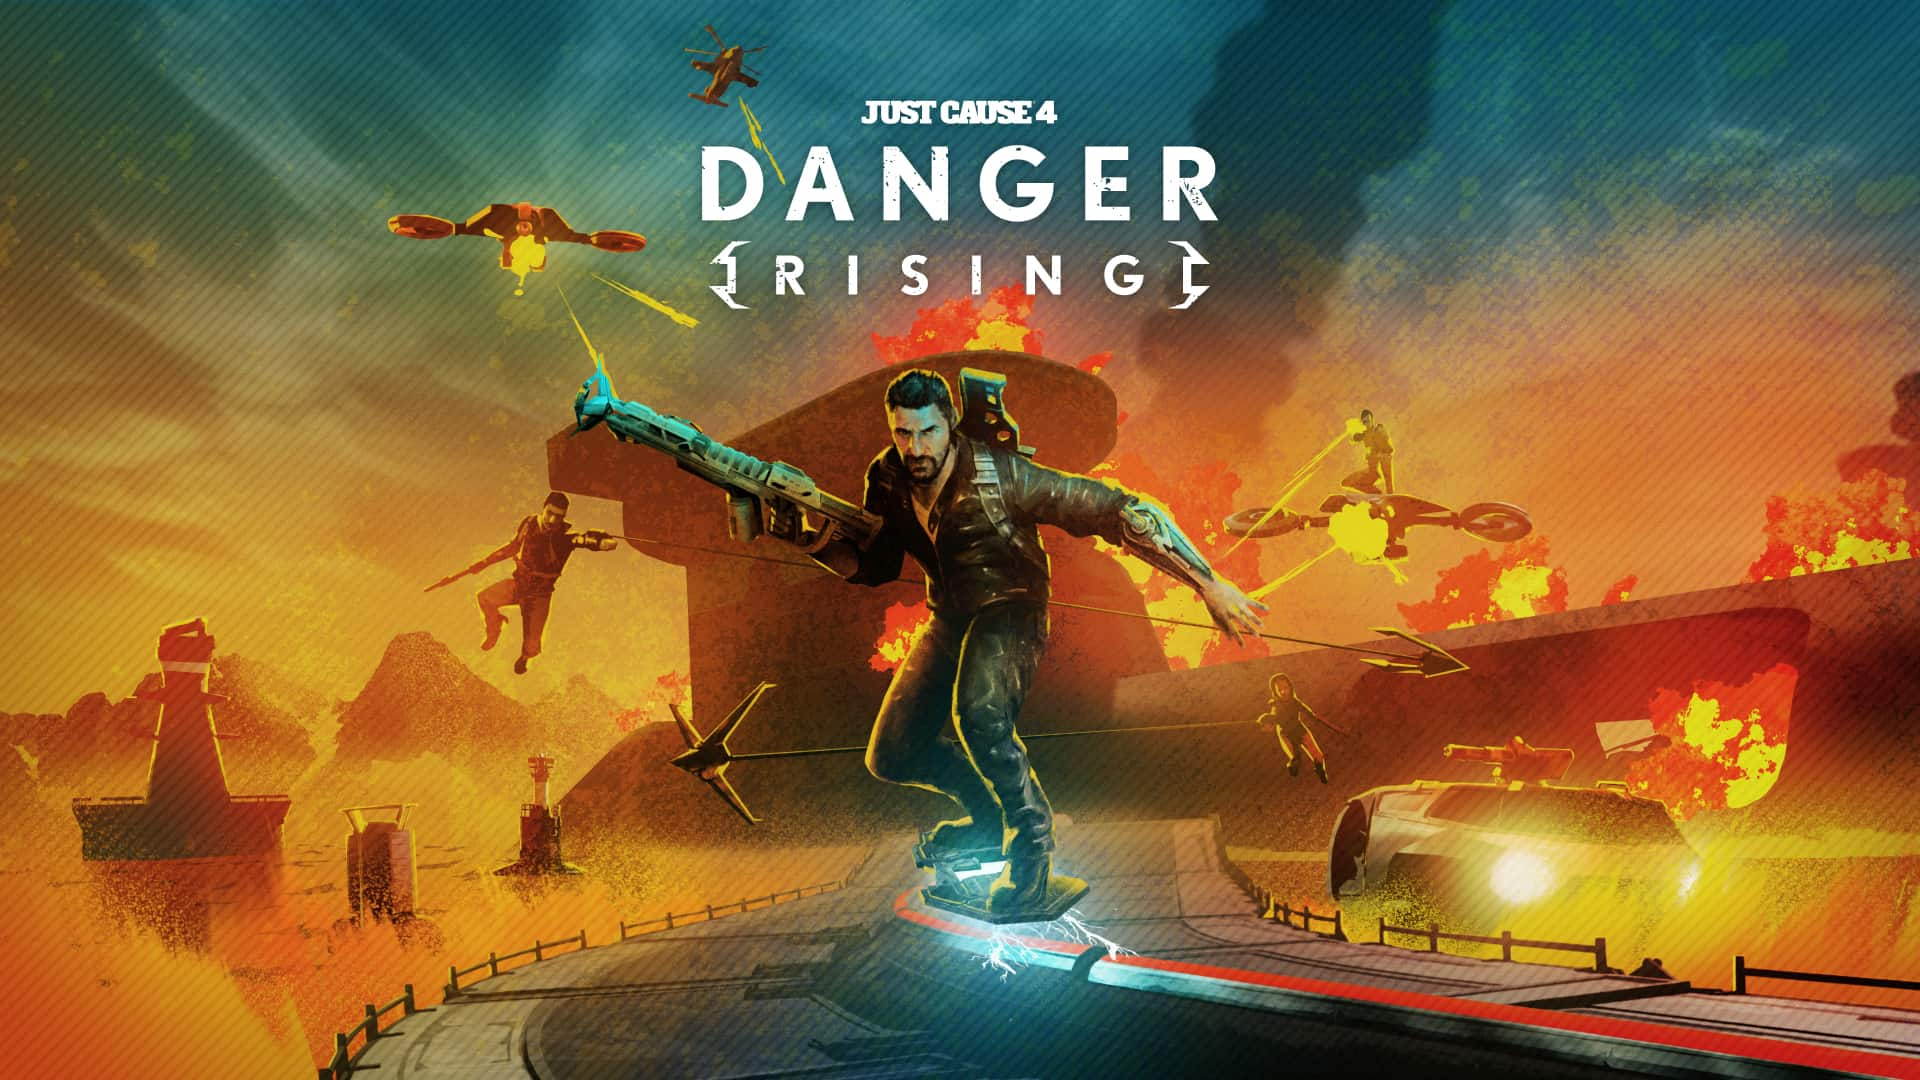 Just Cause 4: Danger Rising Out Now